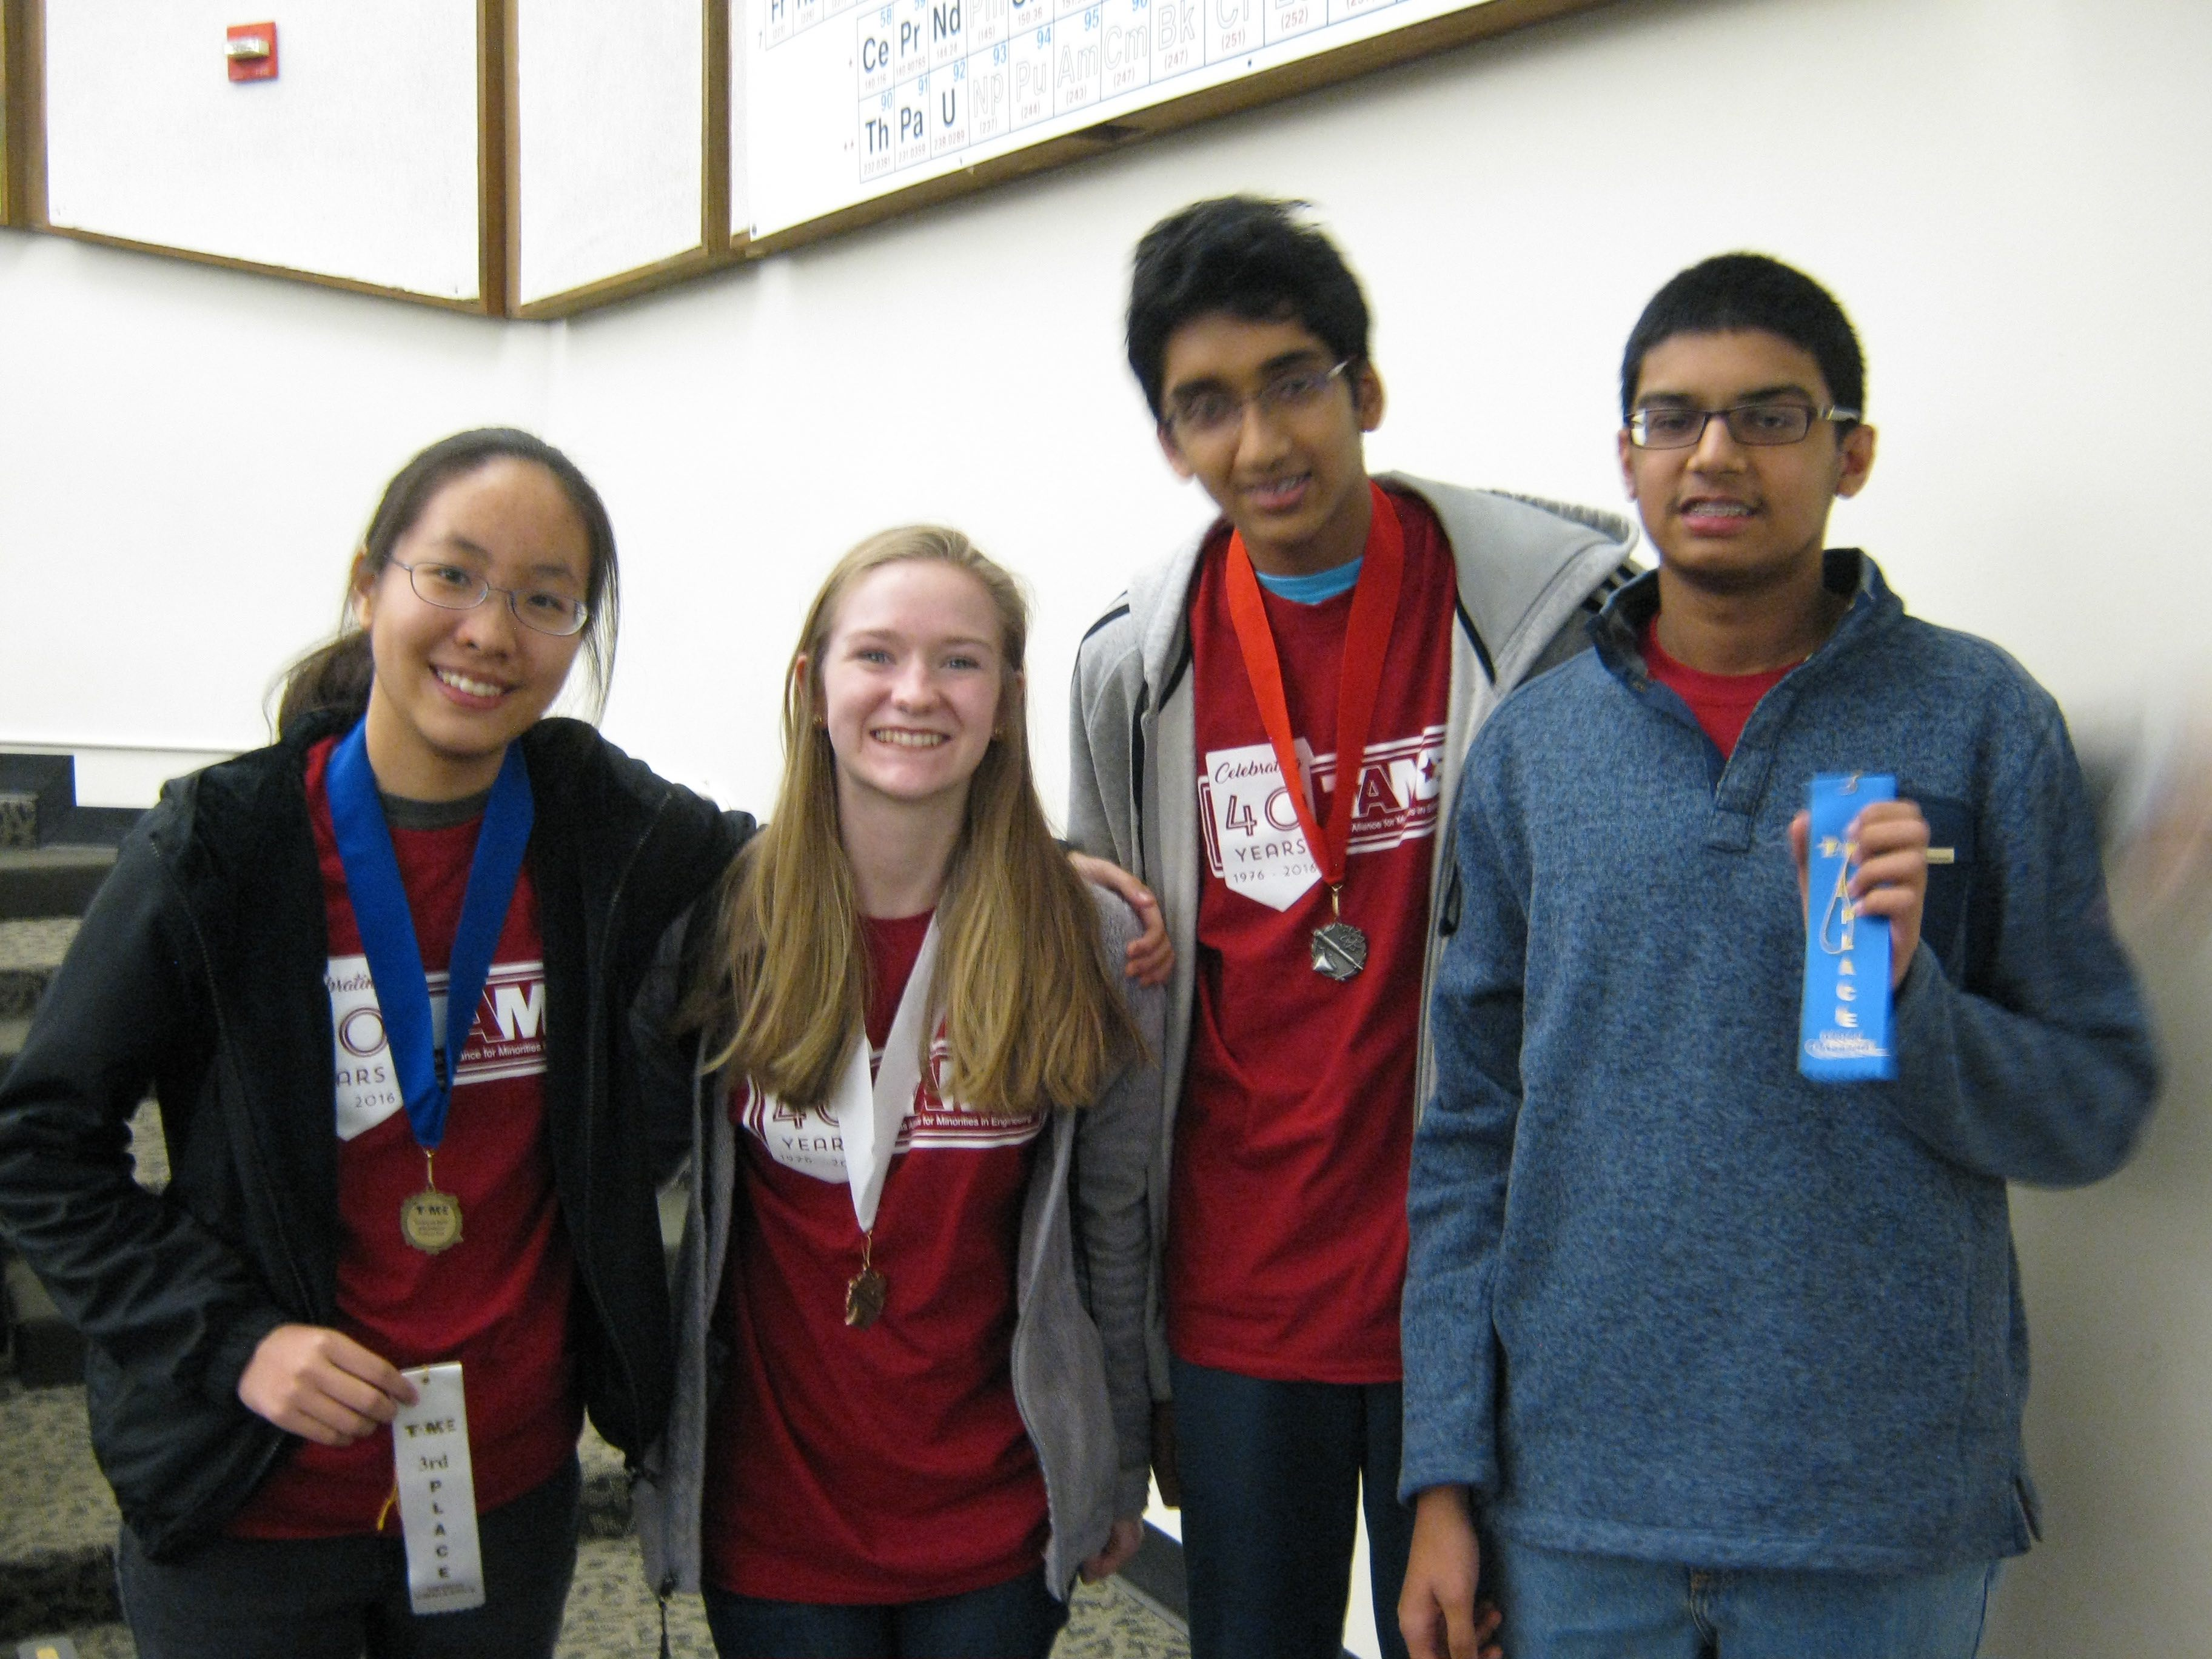 Jenny Zhang '19, Claire Mathieu '18, Himanshu Reddy '20, and Samit Deshmukh '20 stand together and proudly display their winnings   Photo Courtesy of Doug Landers